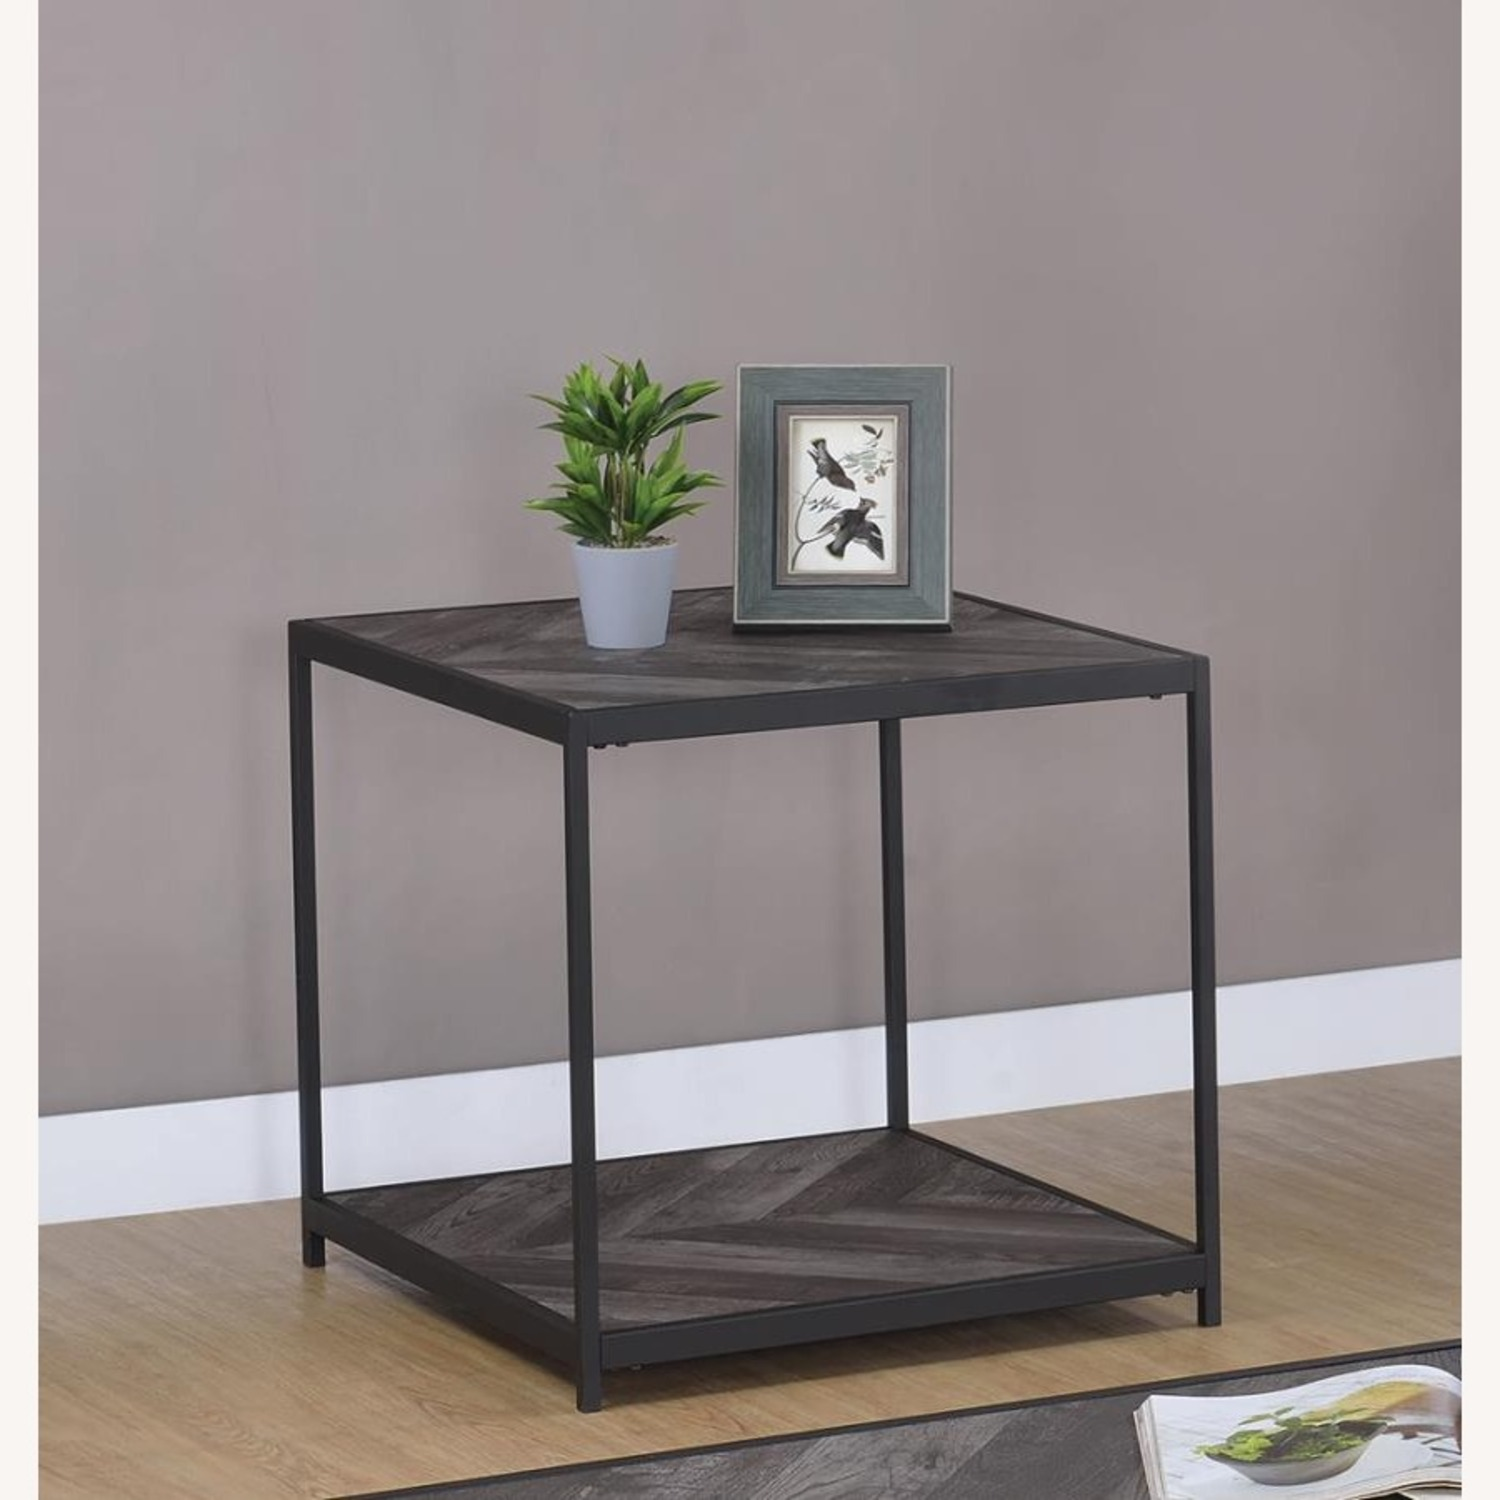 End Table W/ Metal Frame In Sandy Black Finish - image-4